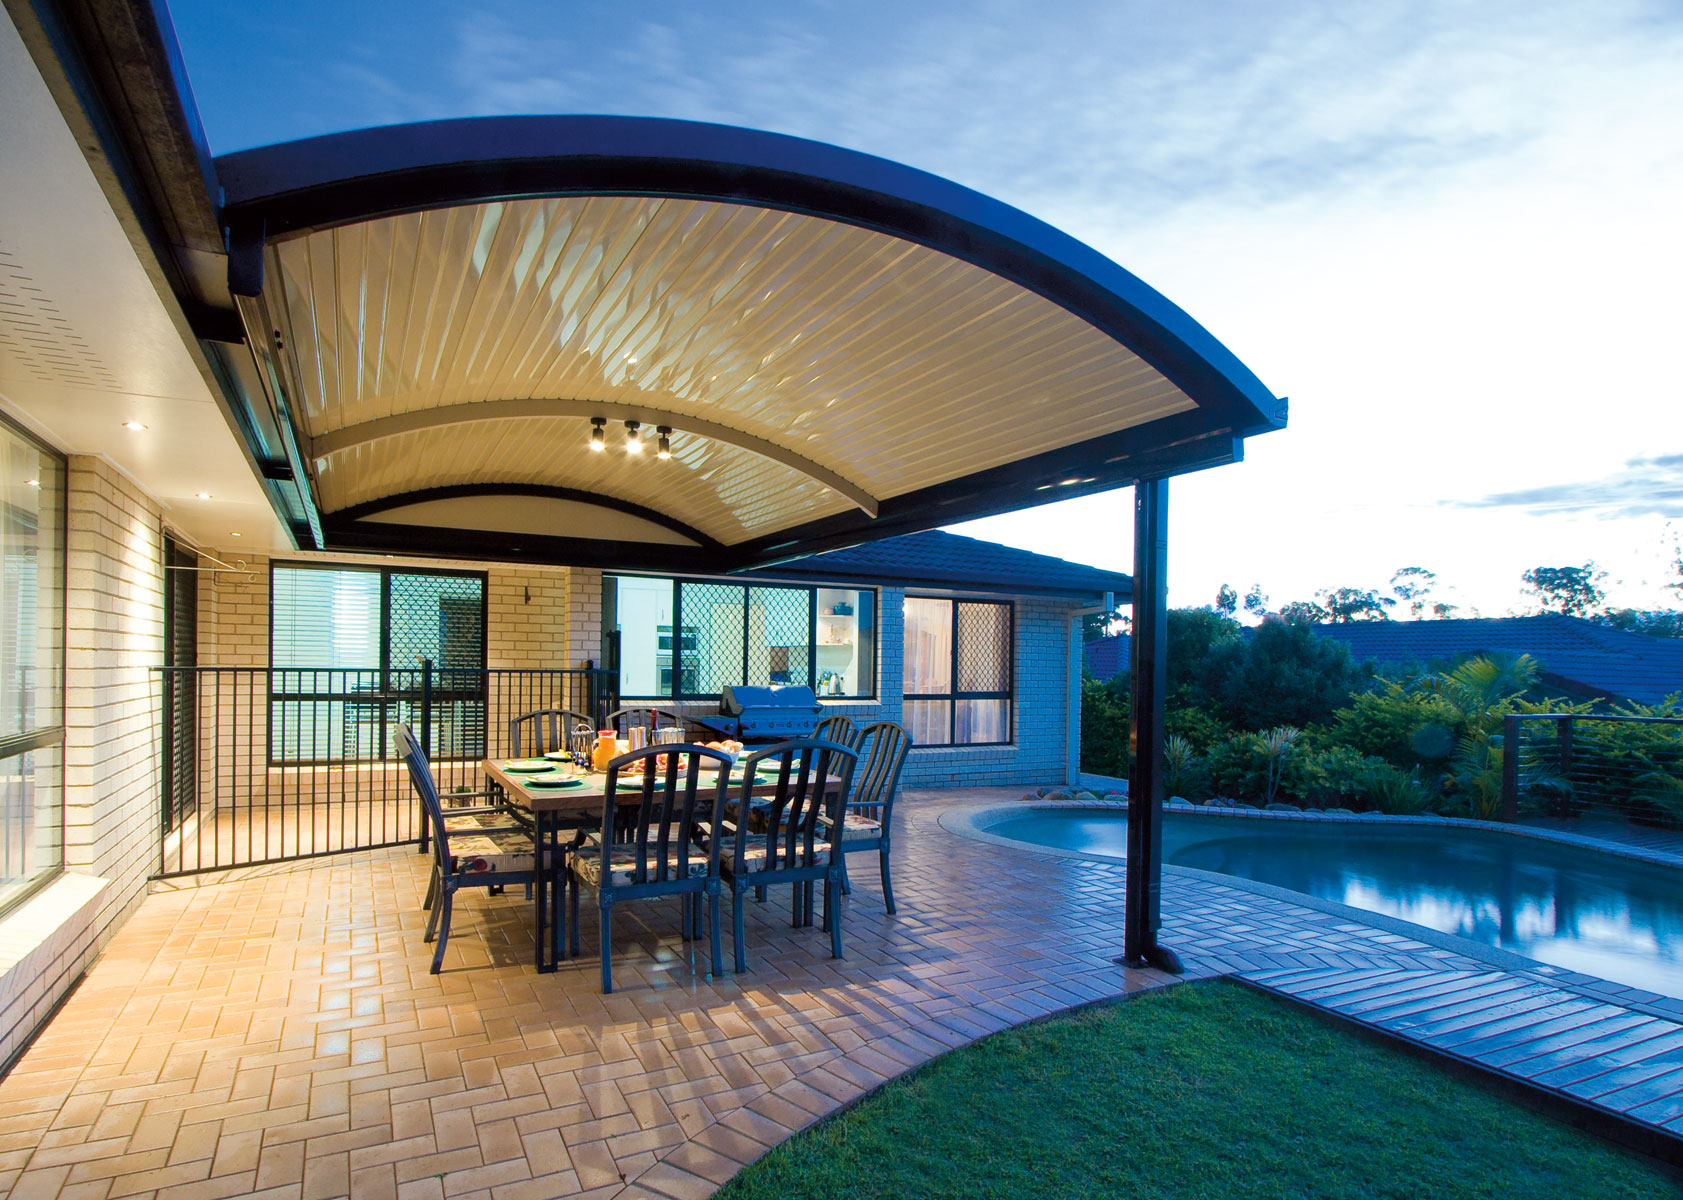 Patio with curved roofs - Stratco Outback Curved Roof Patio on Roof For Patio Ideas id=47984